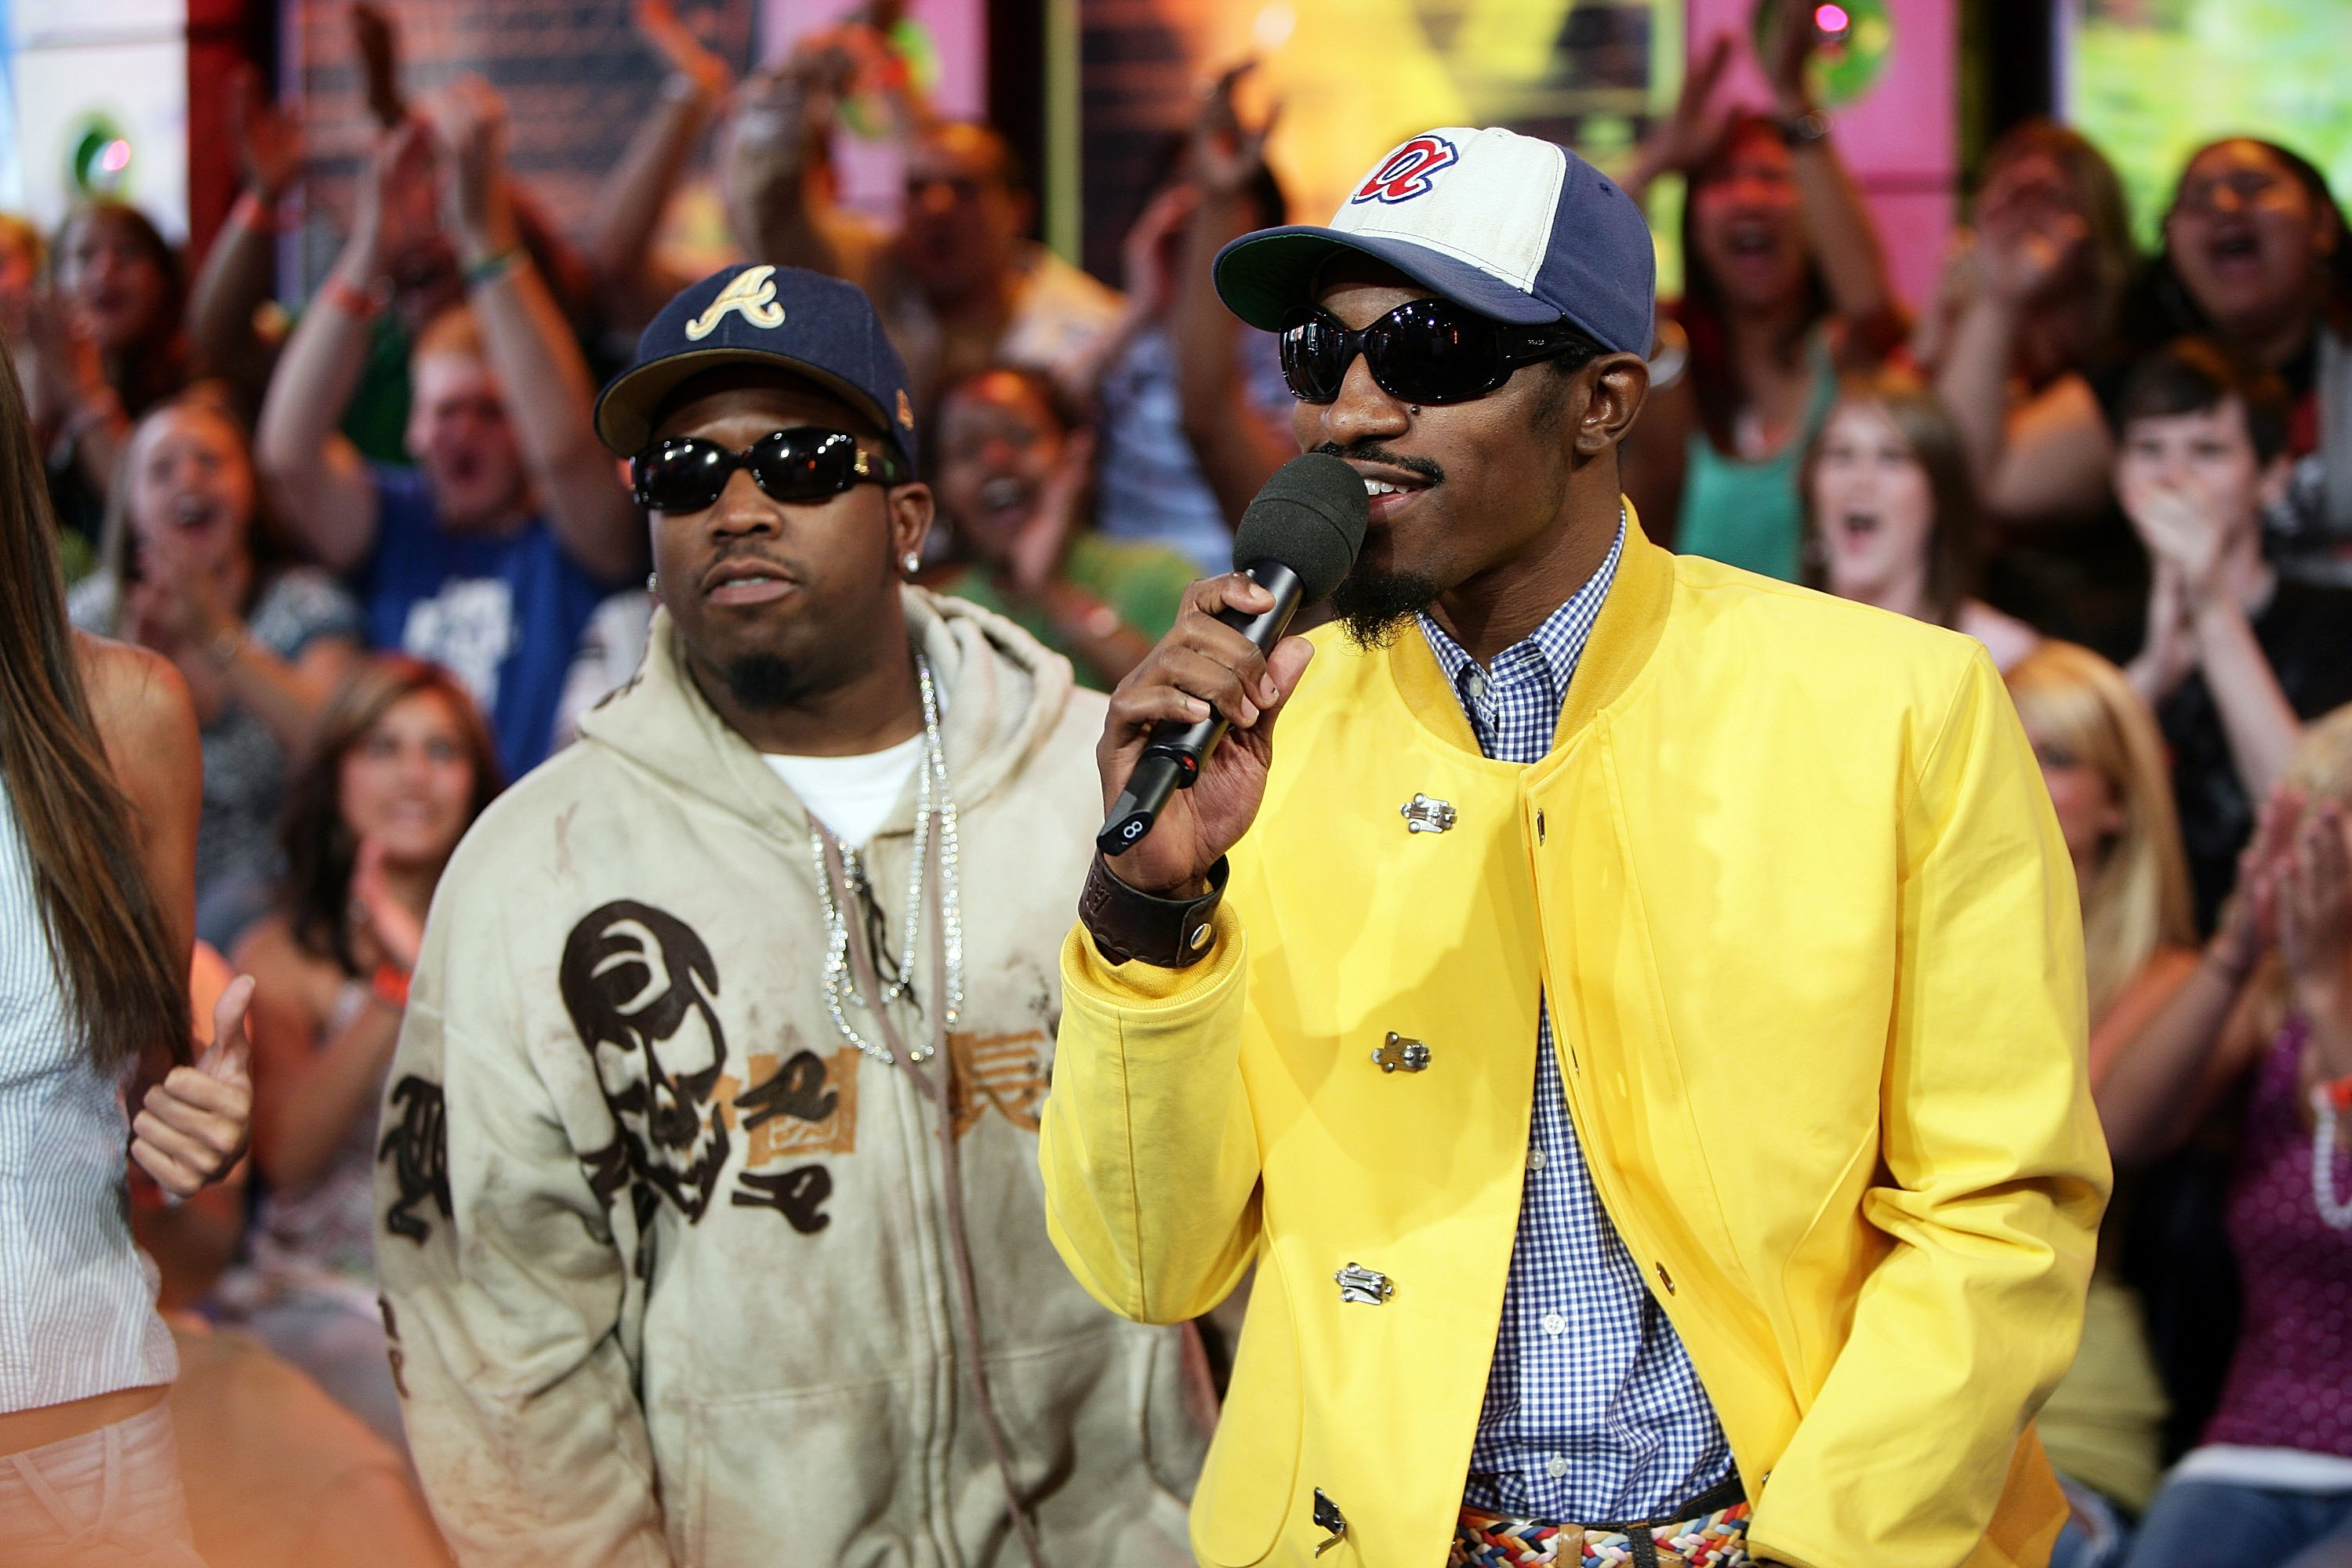 From left: Antwan A. (Big Boi) Patton and Andre (Andre 3000) Benjamin of Outkast onstage during MTV's Total Request Live at the MTV Times Square Studios on Aug. 22, 2006 in New York City.